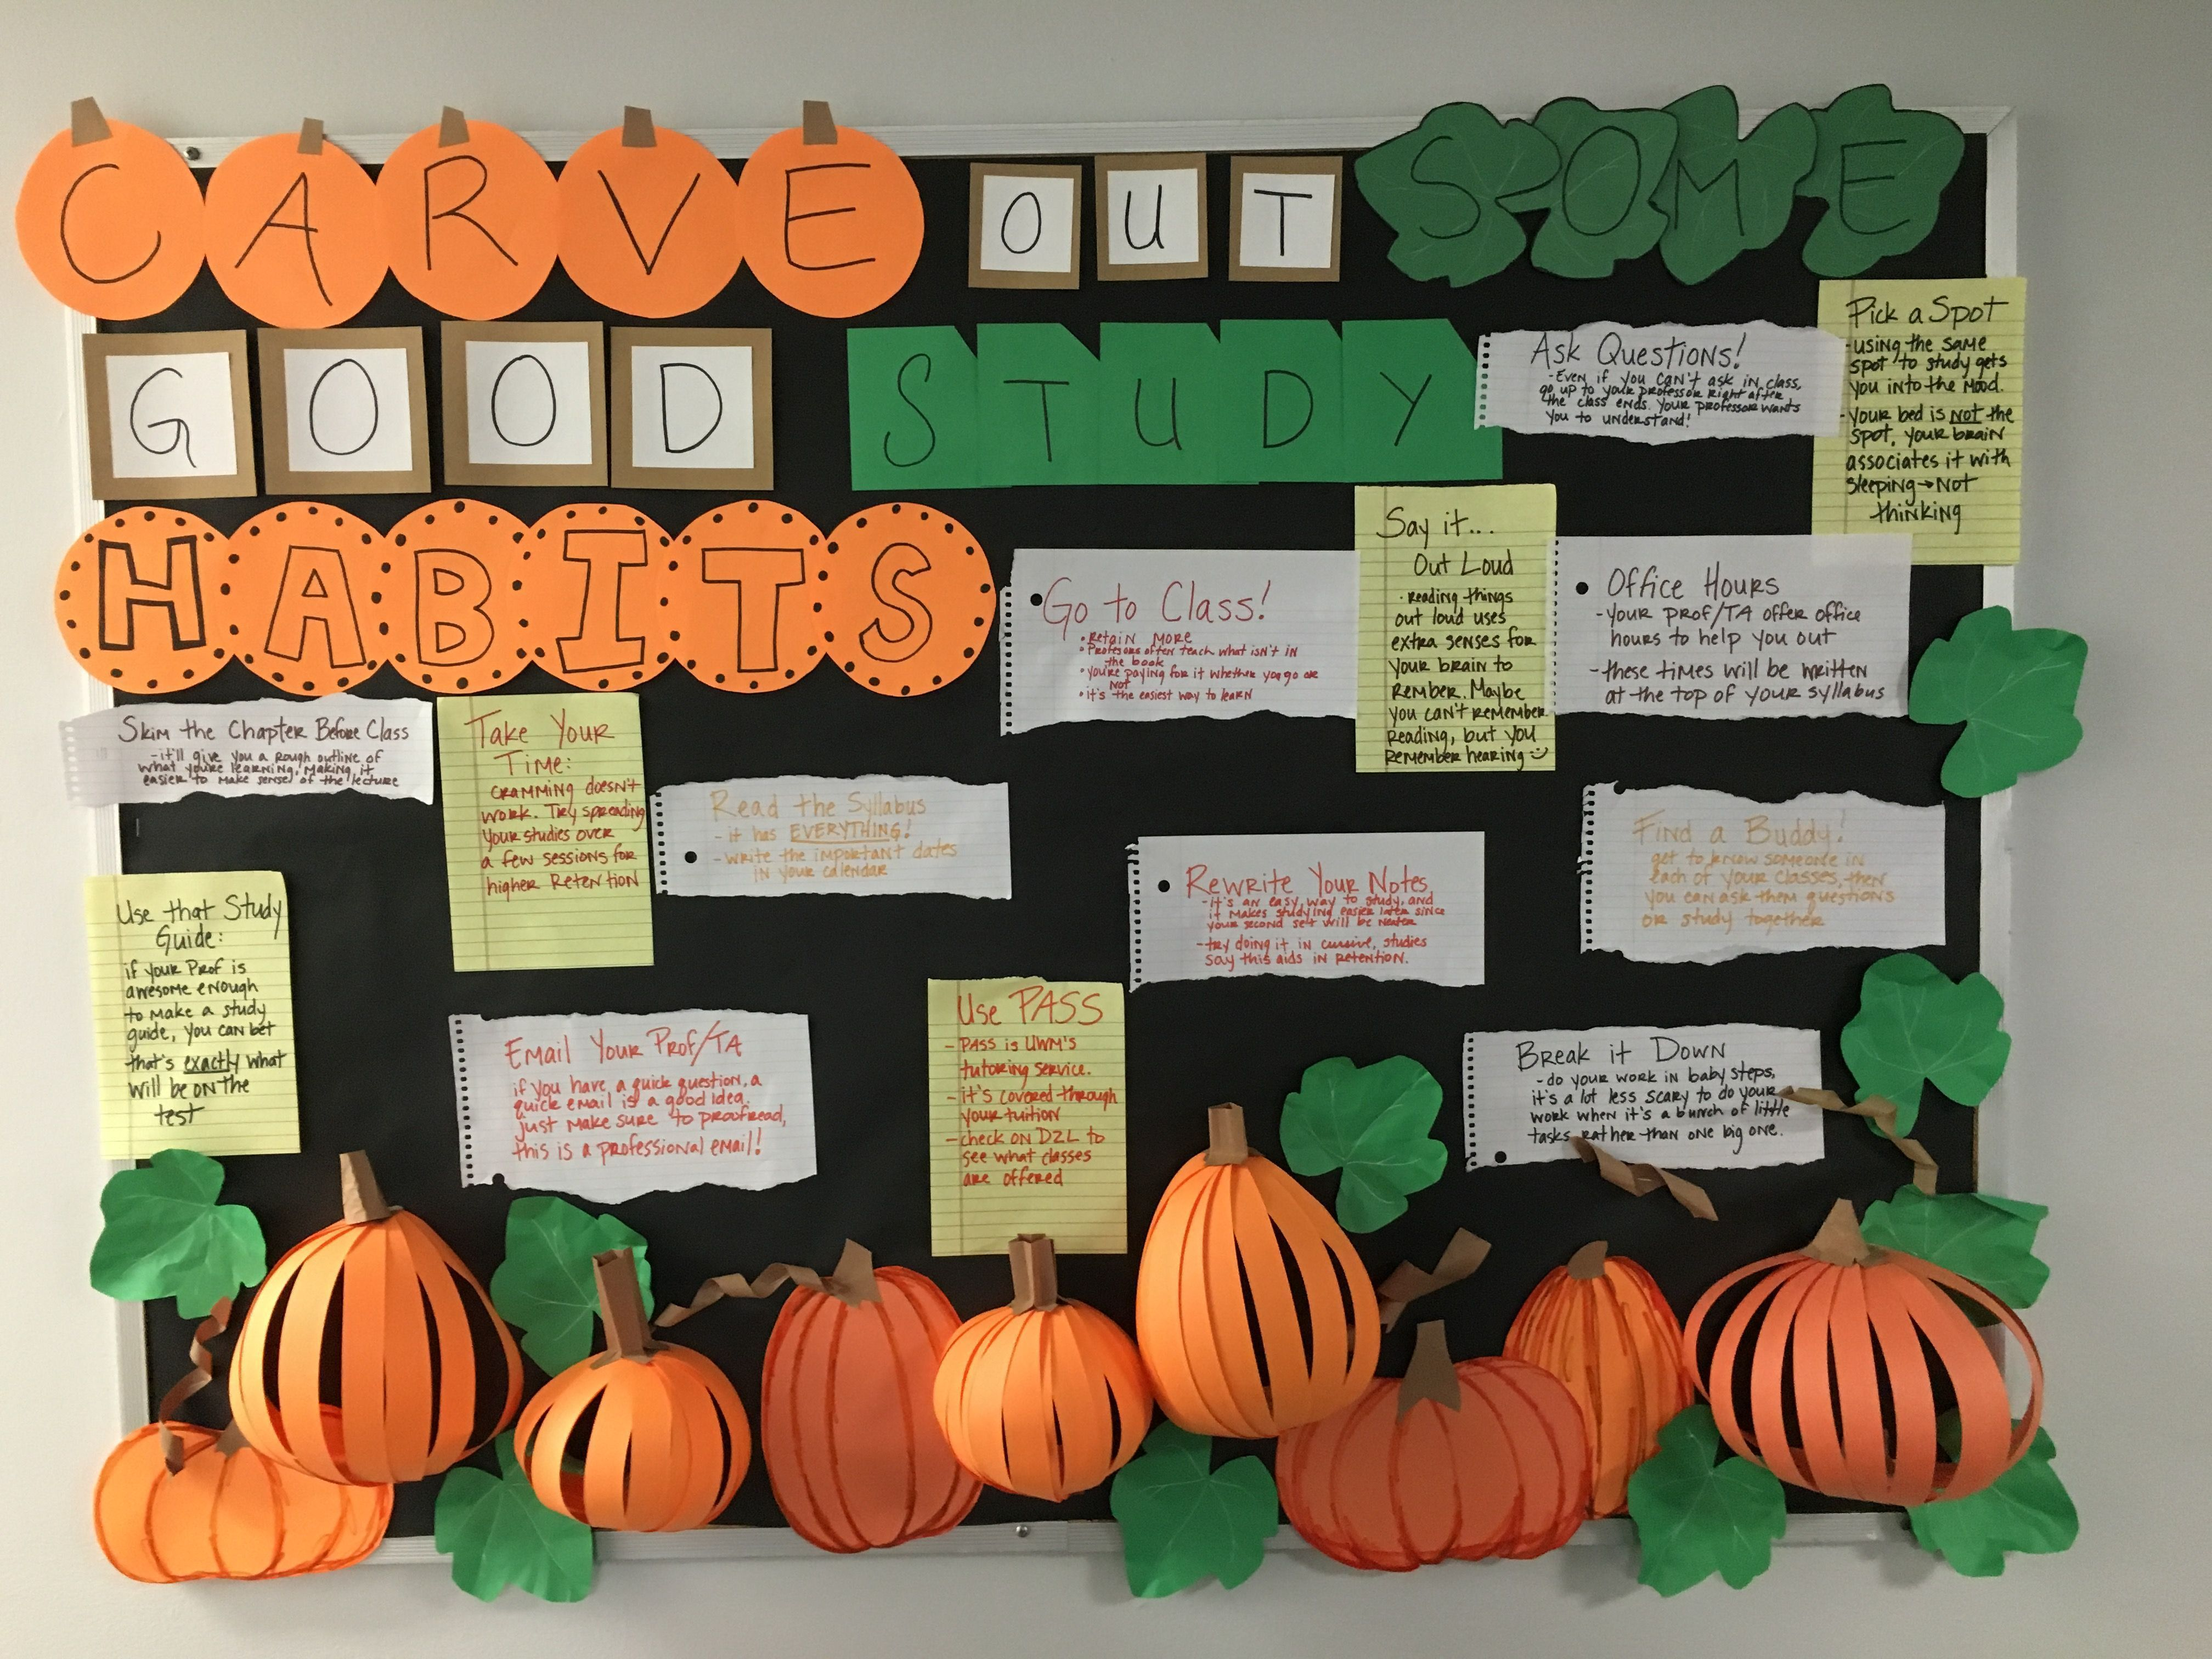 October Bulletin Board #reslife #bulletin #board #bulletinboard #ra #october #halloween #studytips #pumpkins #octoberbulletinboards October Bulletin Board #reslife #bulletin #board #bulletinboard #ra #october #halloween #studytips #pumpkins #octoberbulletinboards October Bulletin Board #reslife #bulletin #board #bulletinboard #ra #october #halloween #studytips #pumpkins #octoberbulletinboards October Bulletin Board #reslife #bulletin #board #bulletinboard #ra #october #halloween #studytips #pump #halloweenbulletinboards